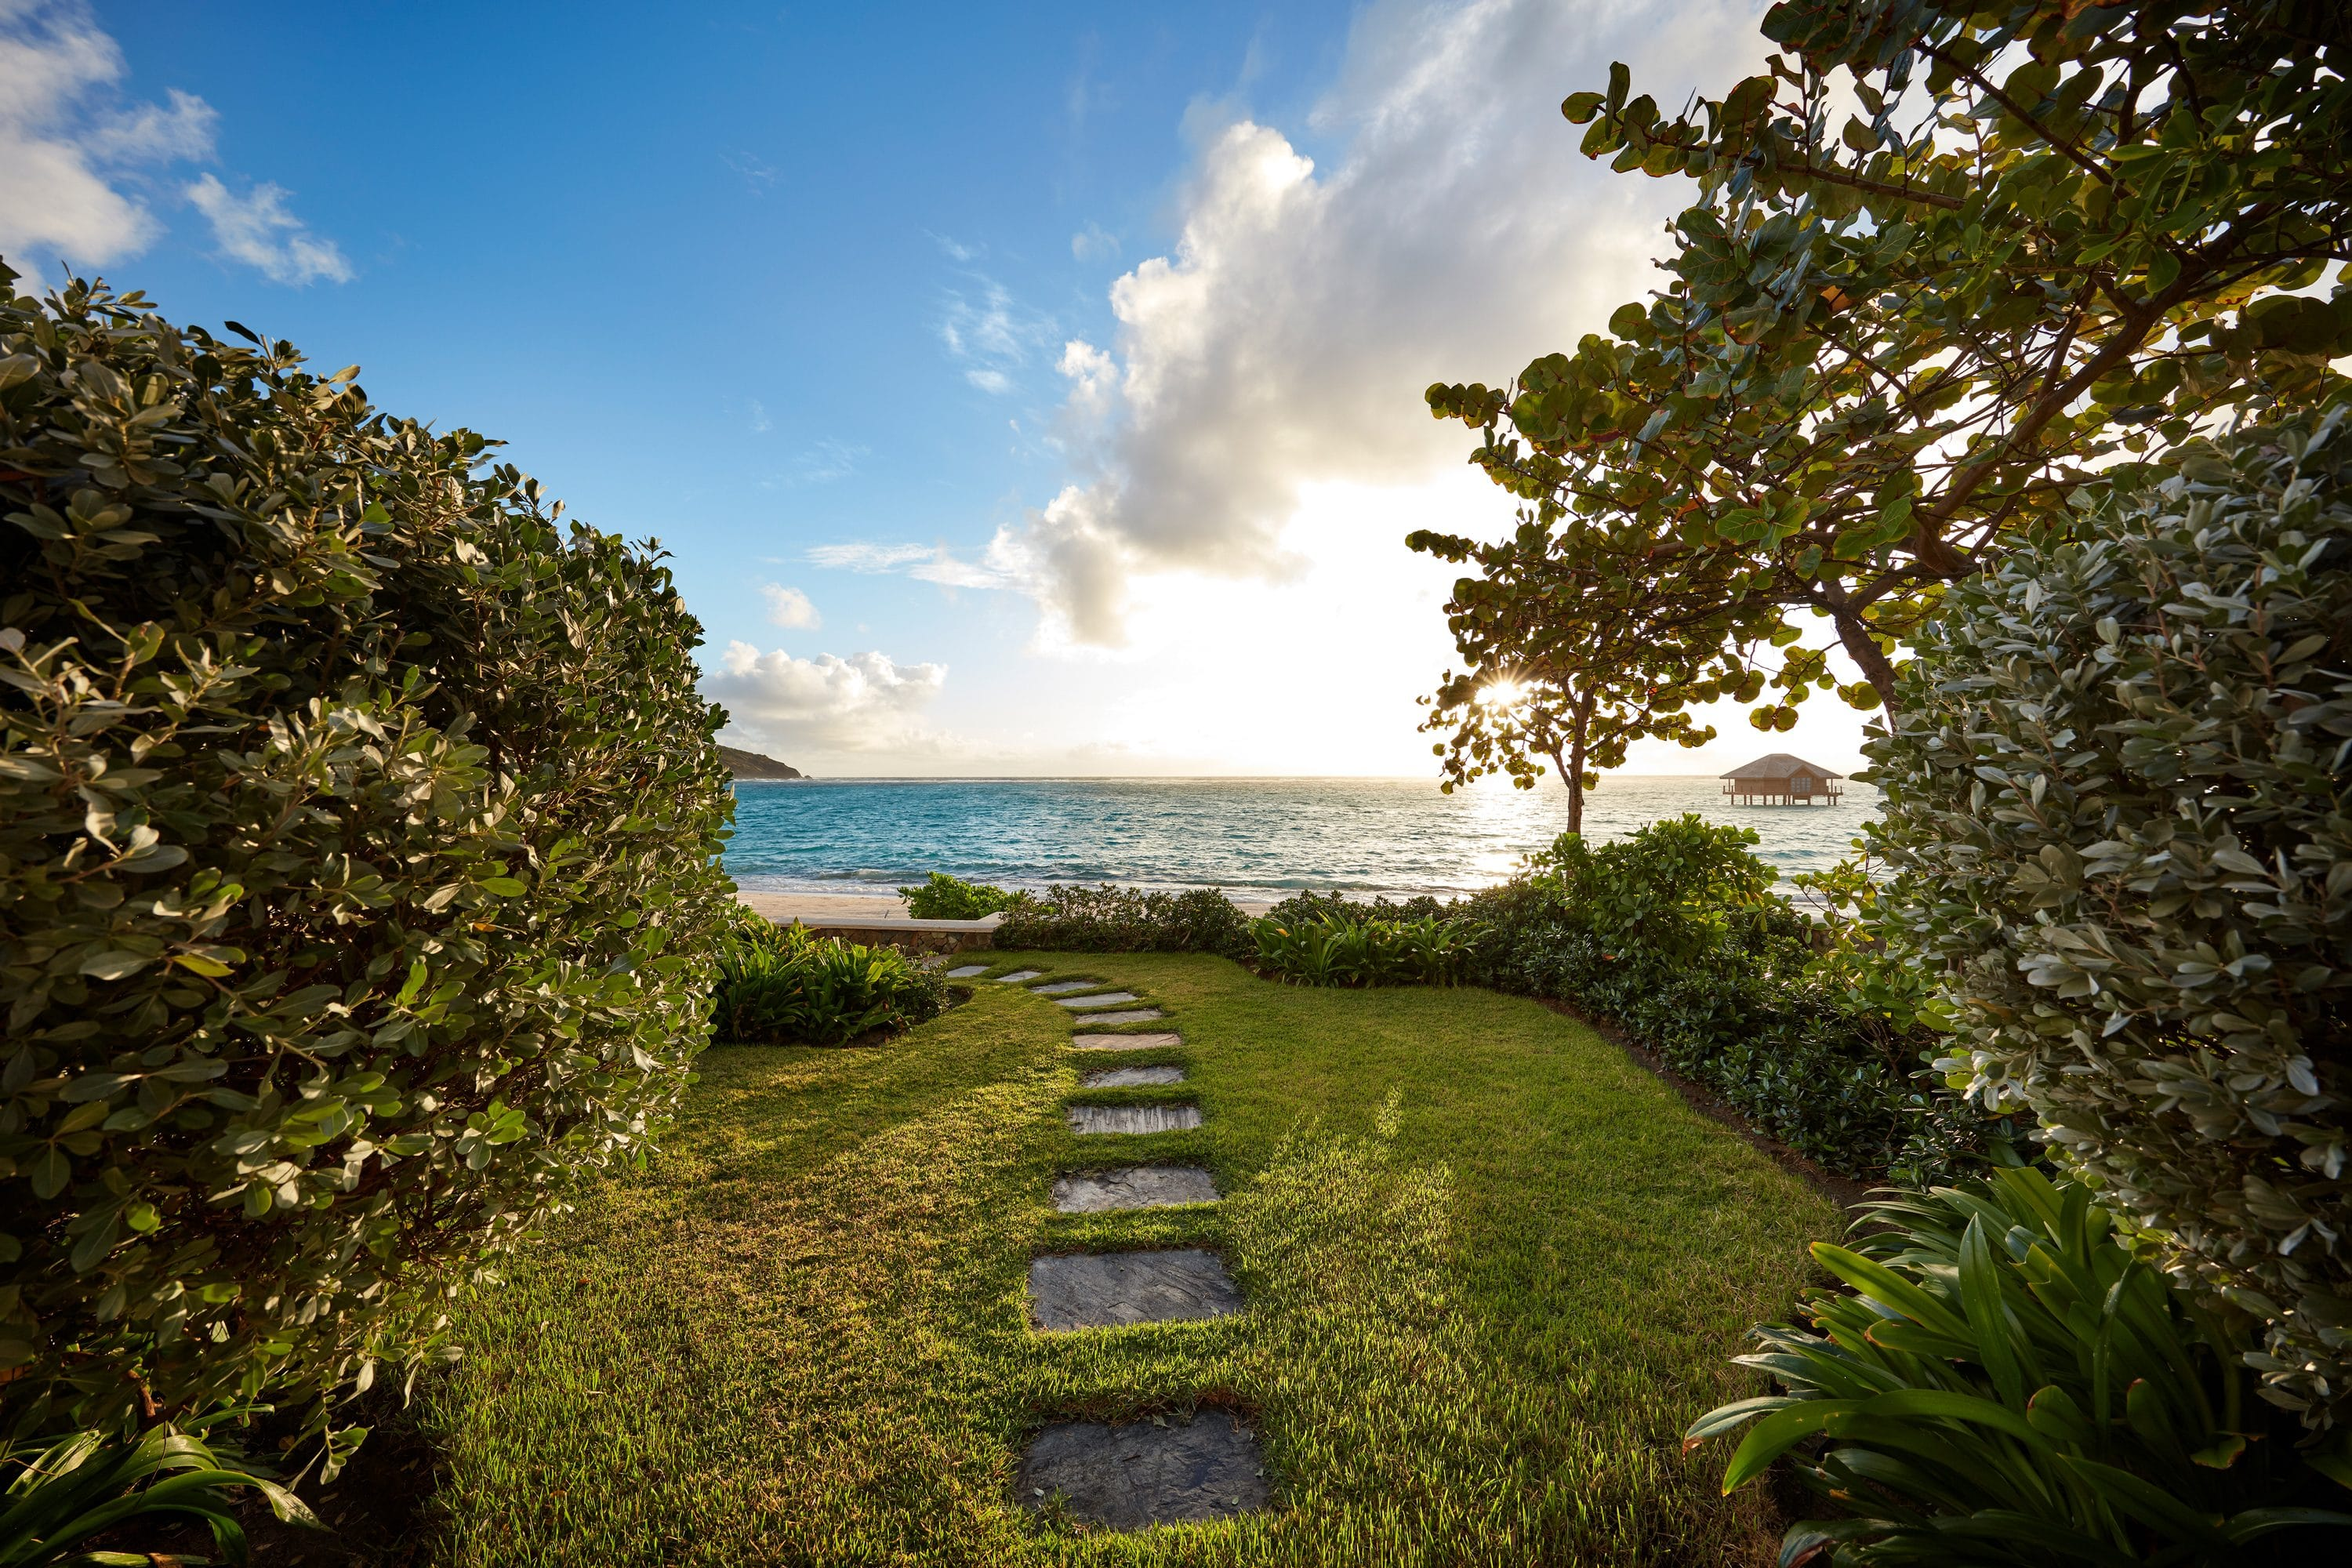 Path leads to ocean through garden